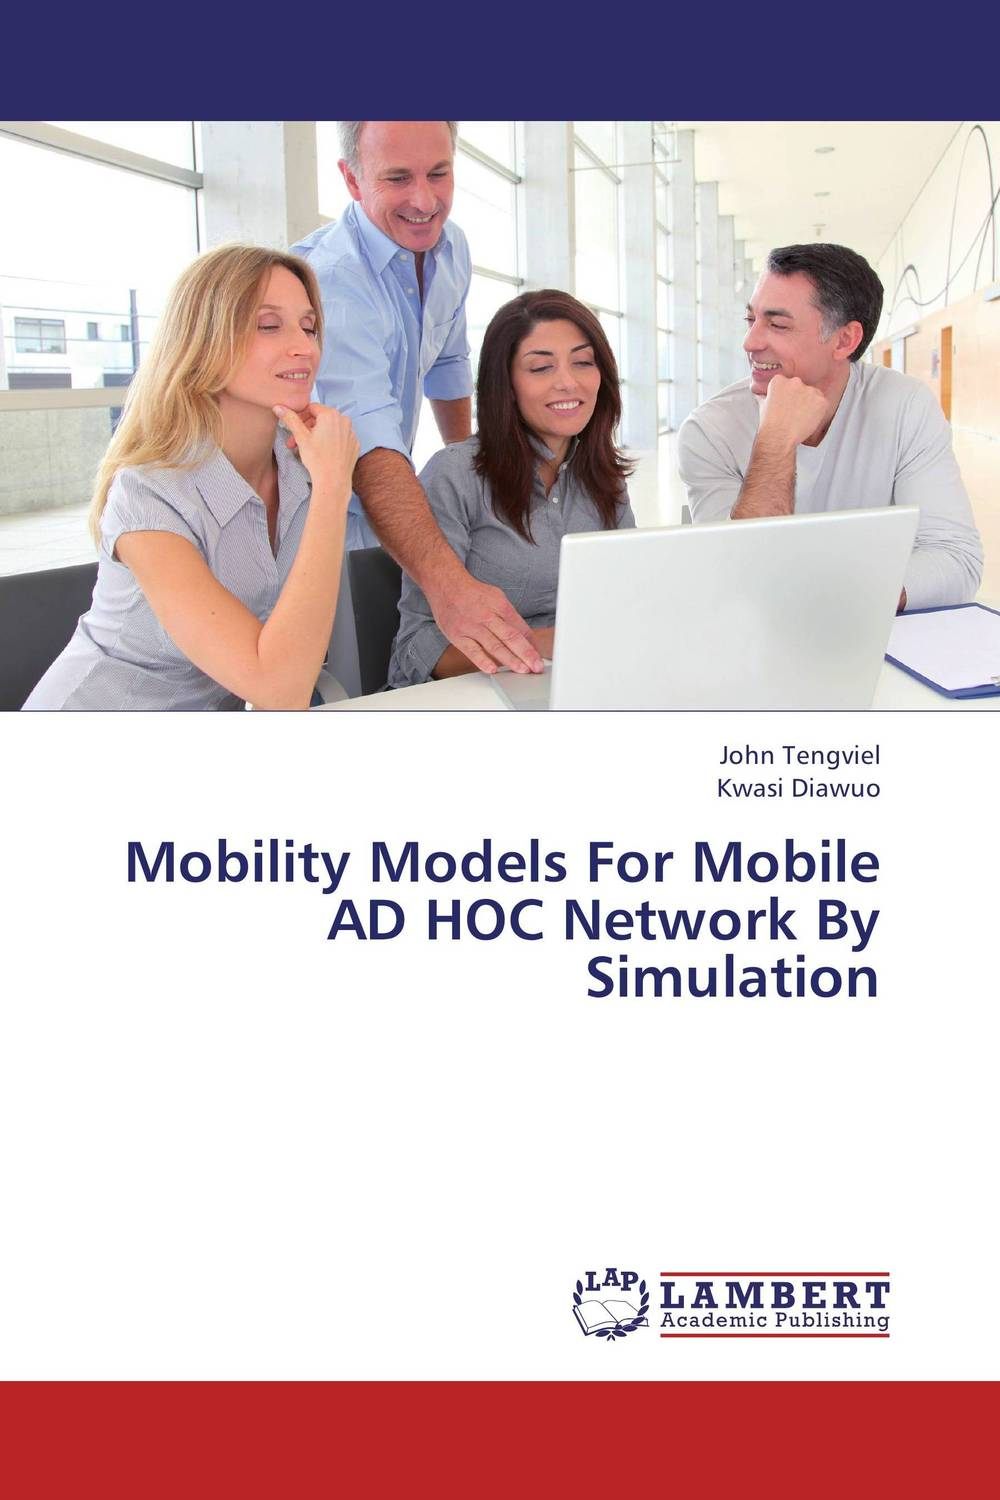 Mobility Models For Mobile AD HOC Network By Simulation space and mobility in palestine